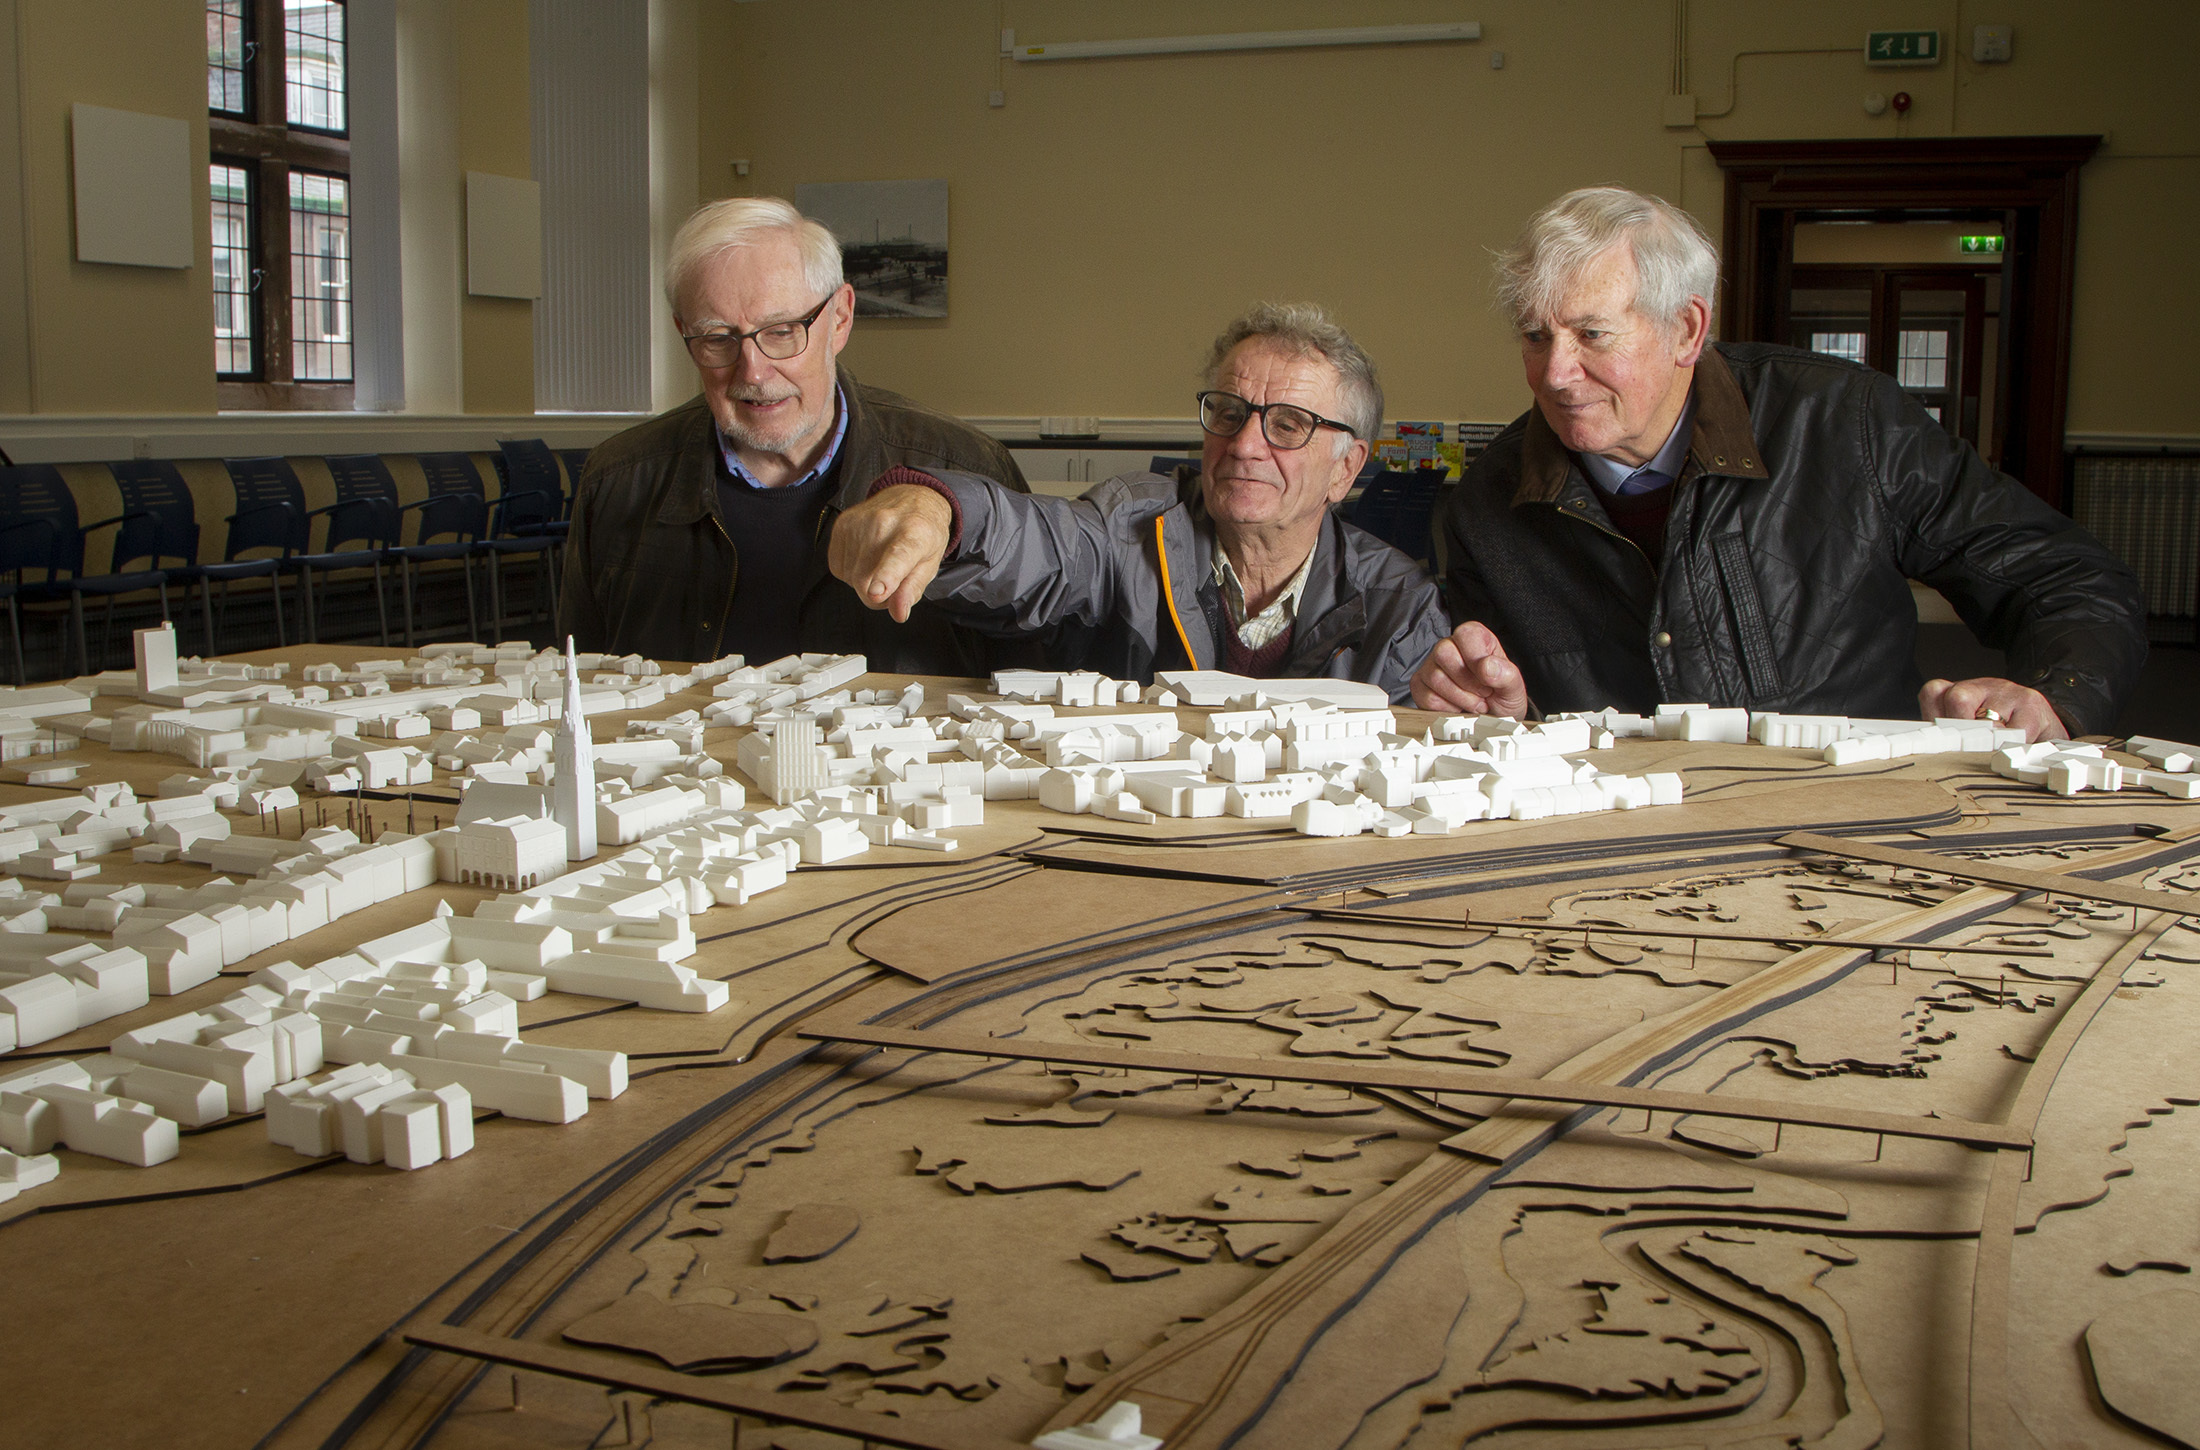 Sandy Munro, Raymond Sutton and John MacPherson of the Montrose Society study the 3D model on display at the town's library.